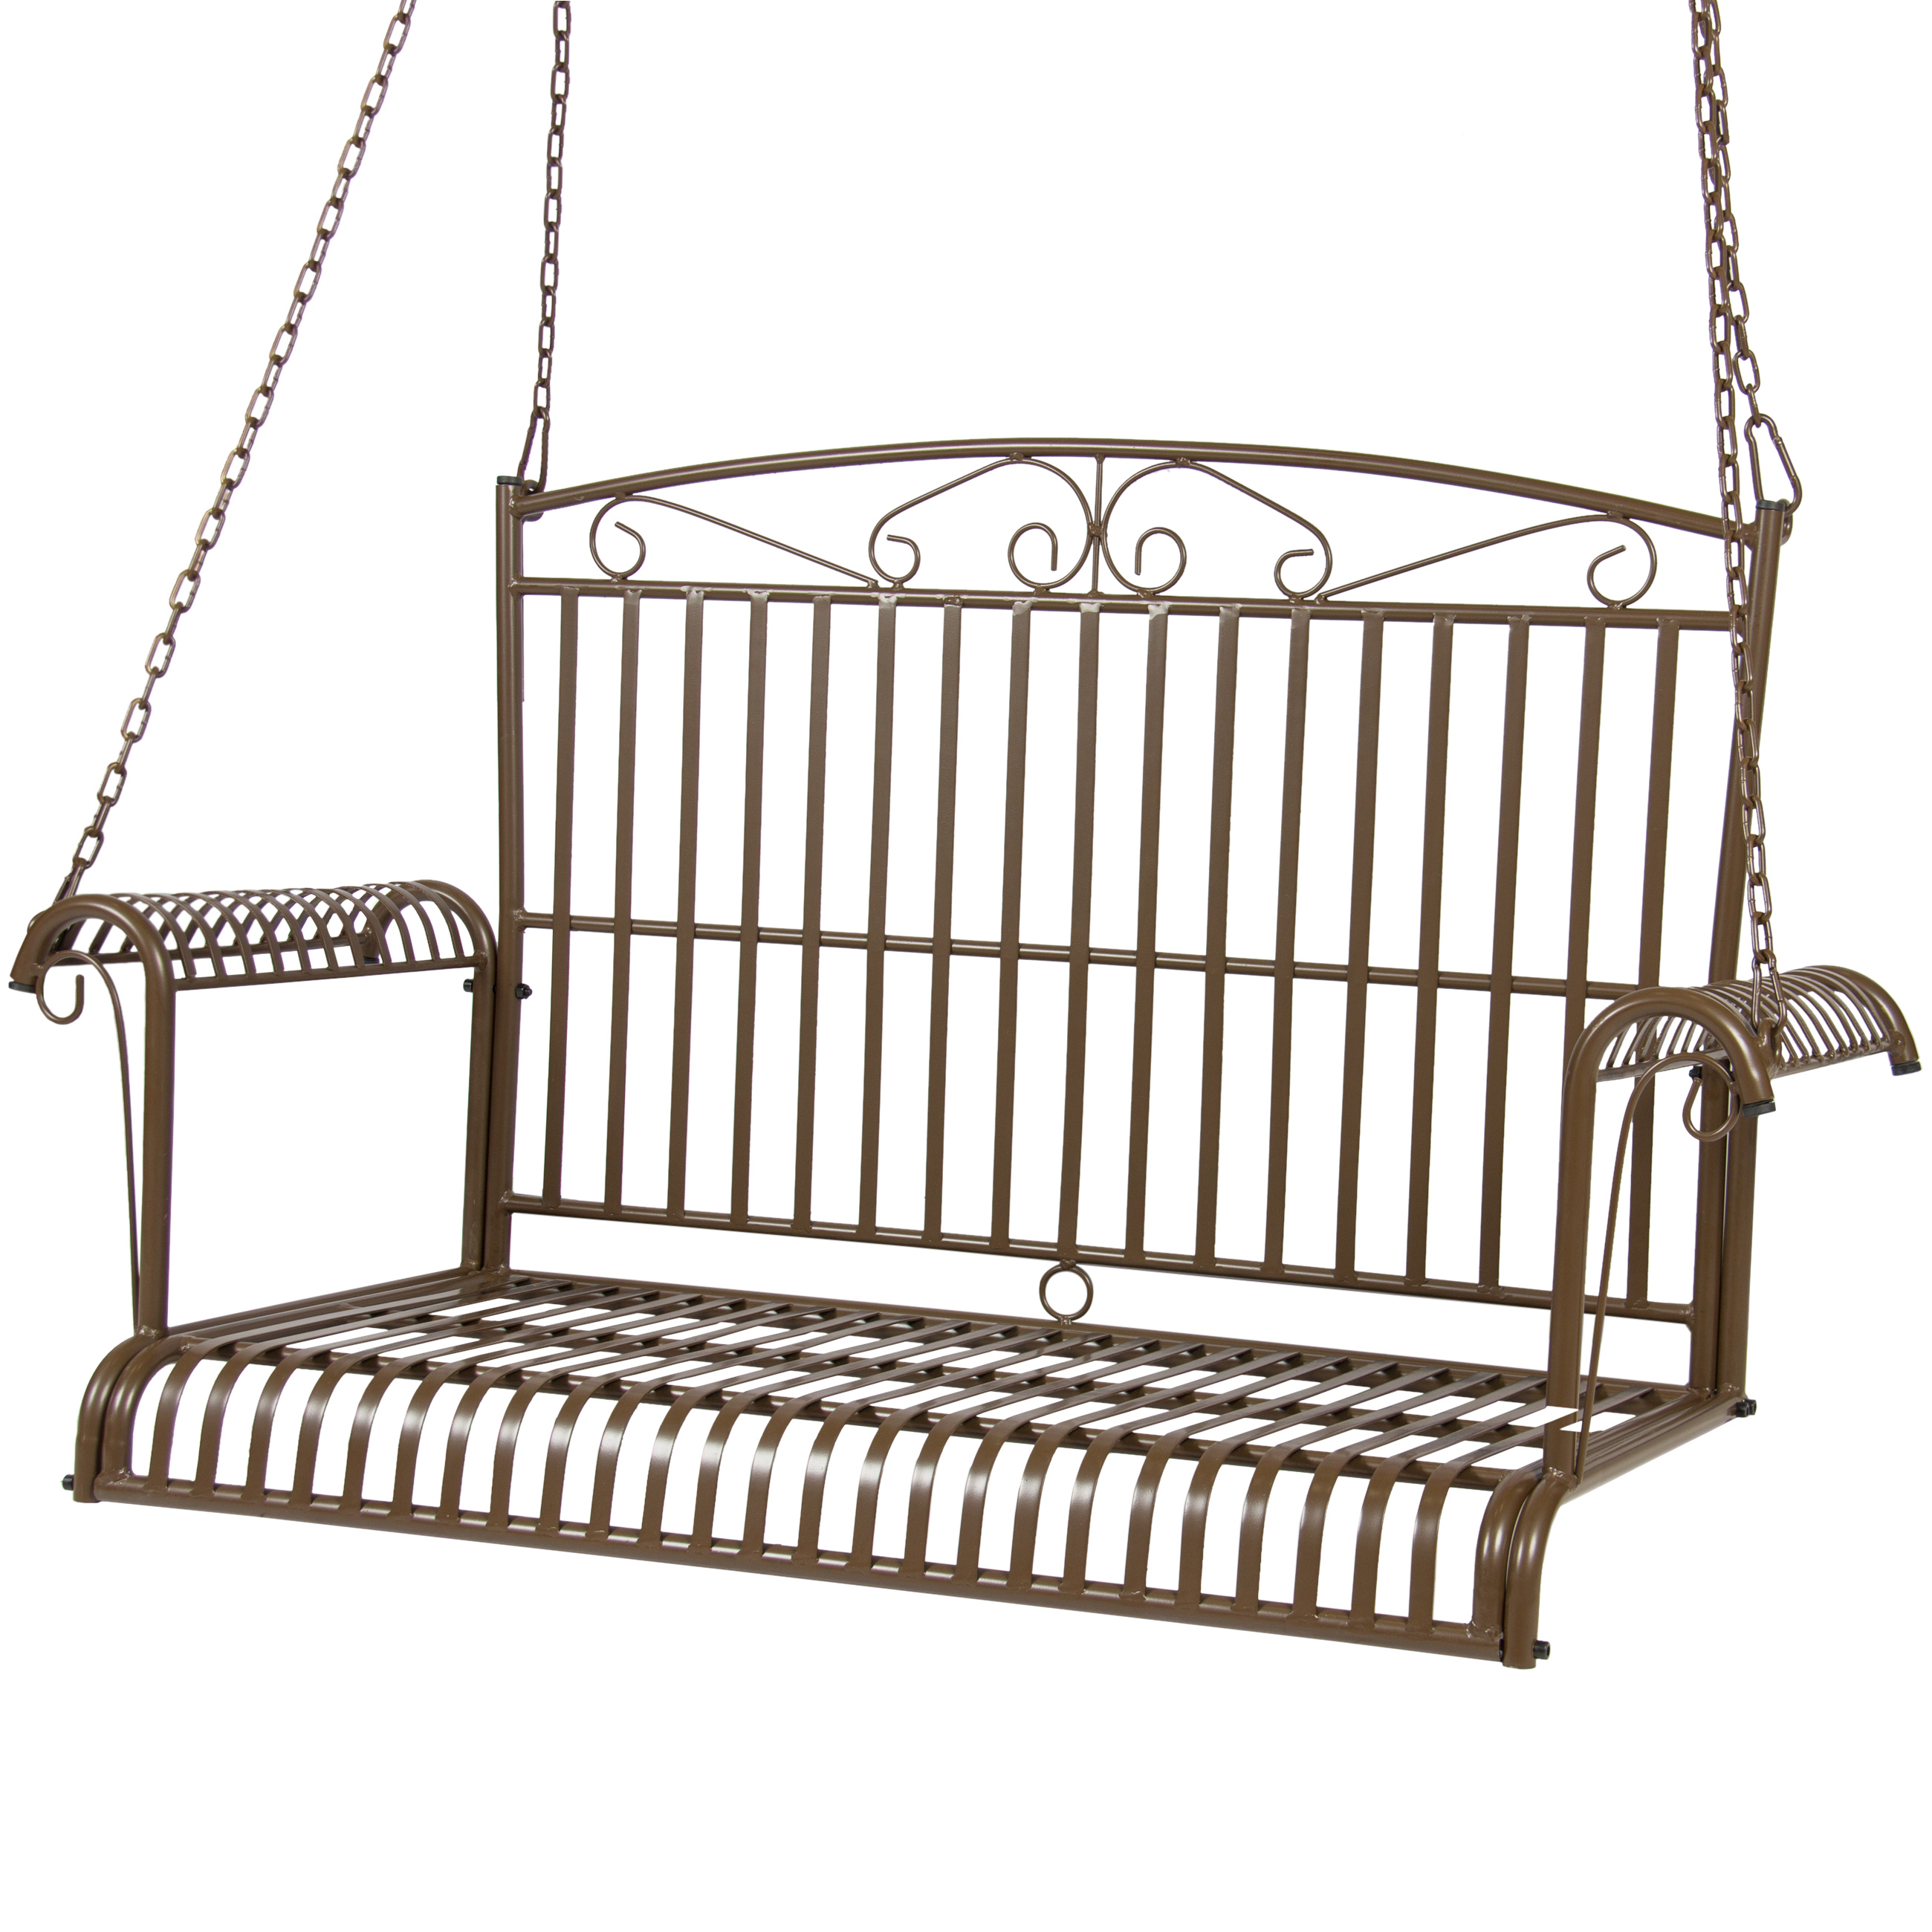 Best Choice Products BCP Iron Patio Hanging Porch Swing Chair Bench Seat Outdoor Furniture by Best Choice Products